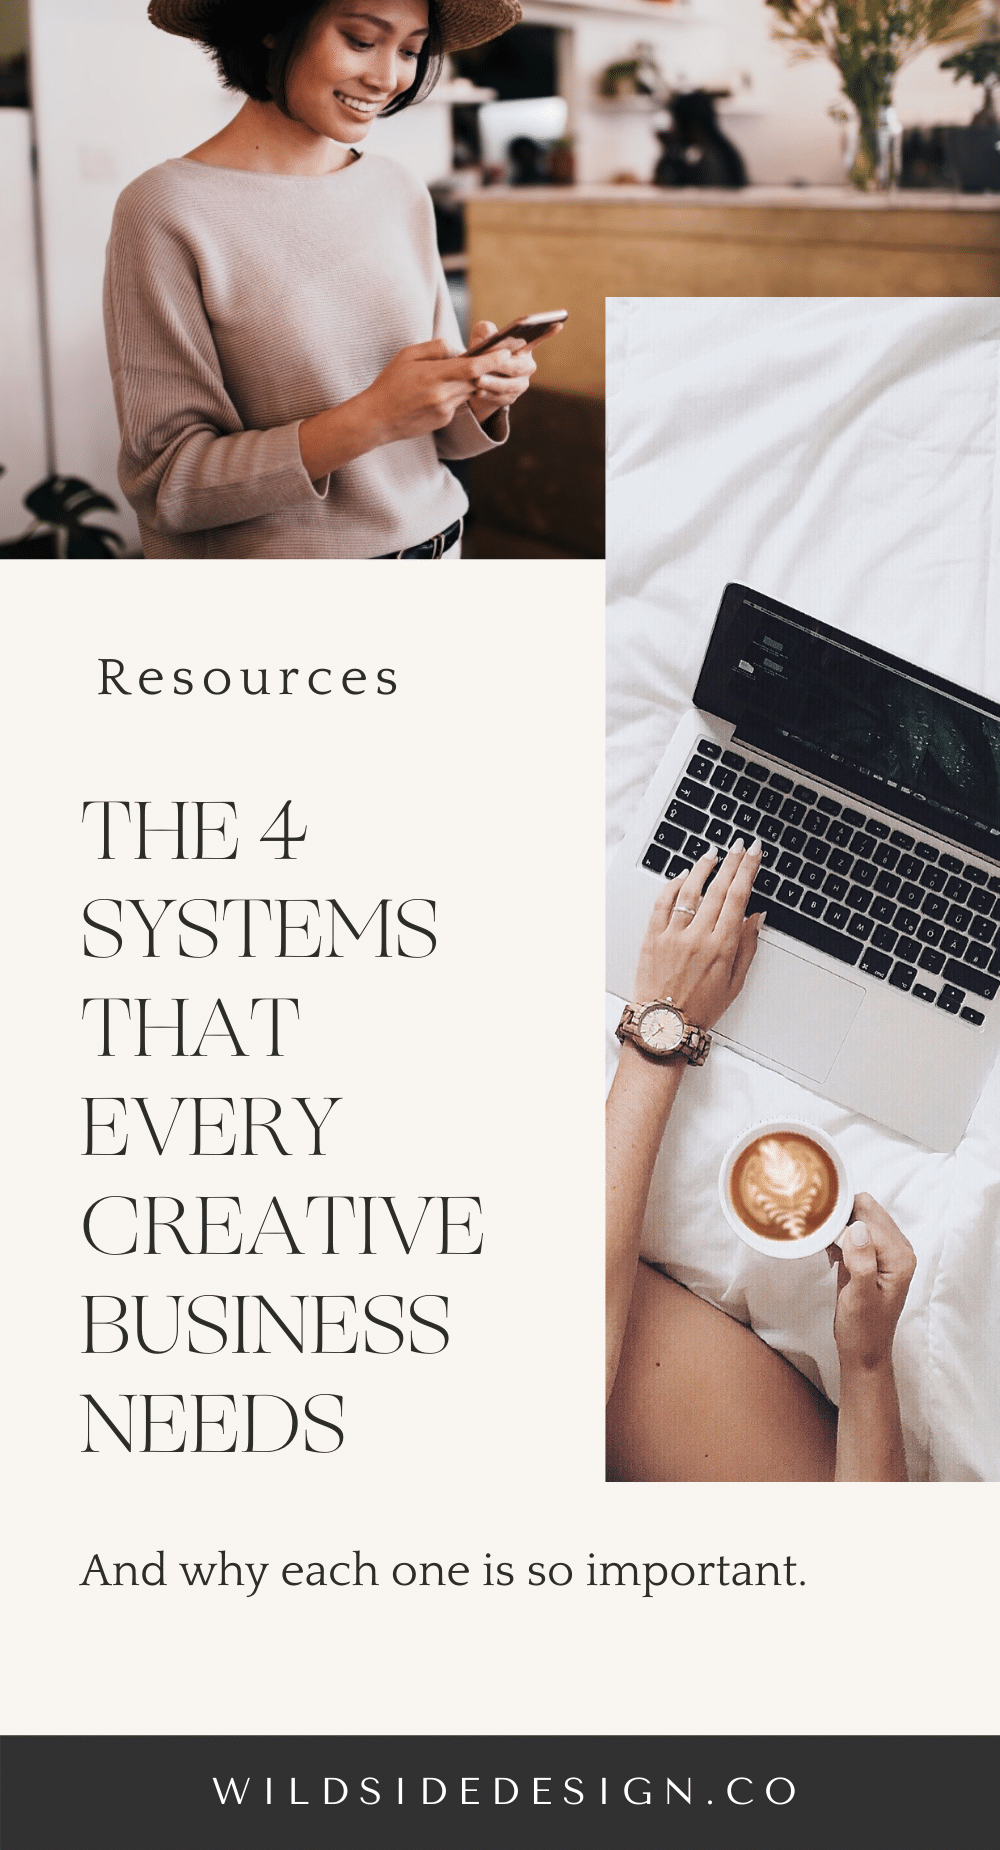 The 4 Systems You Need to Run Your Creative Business